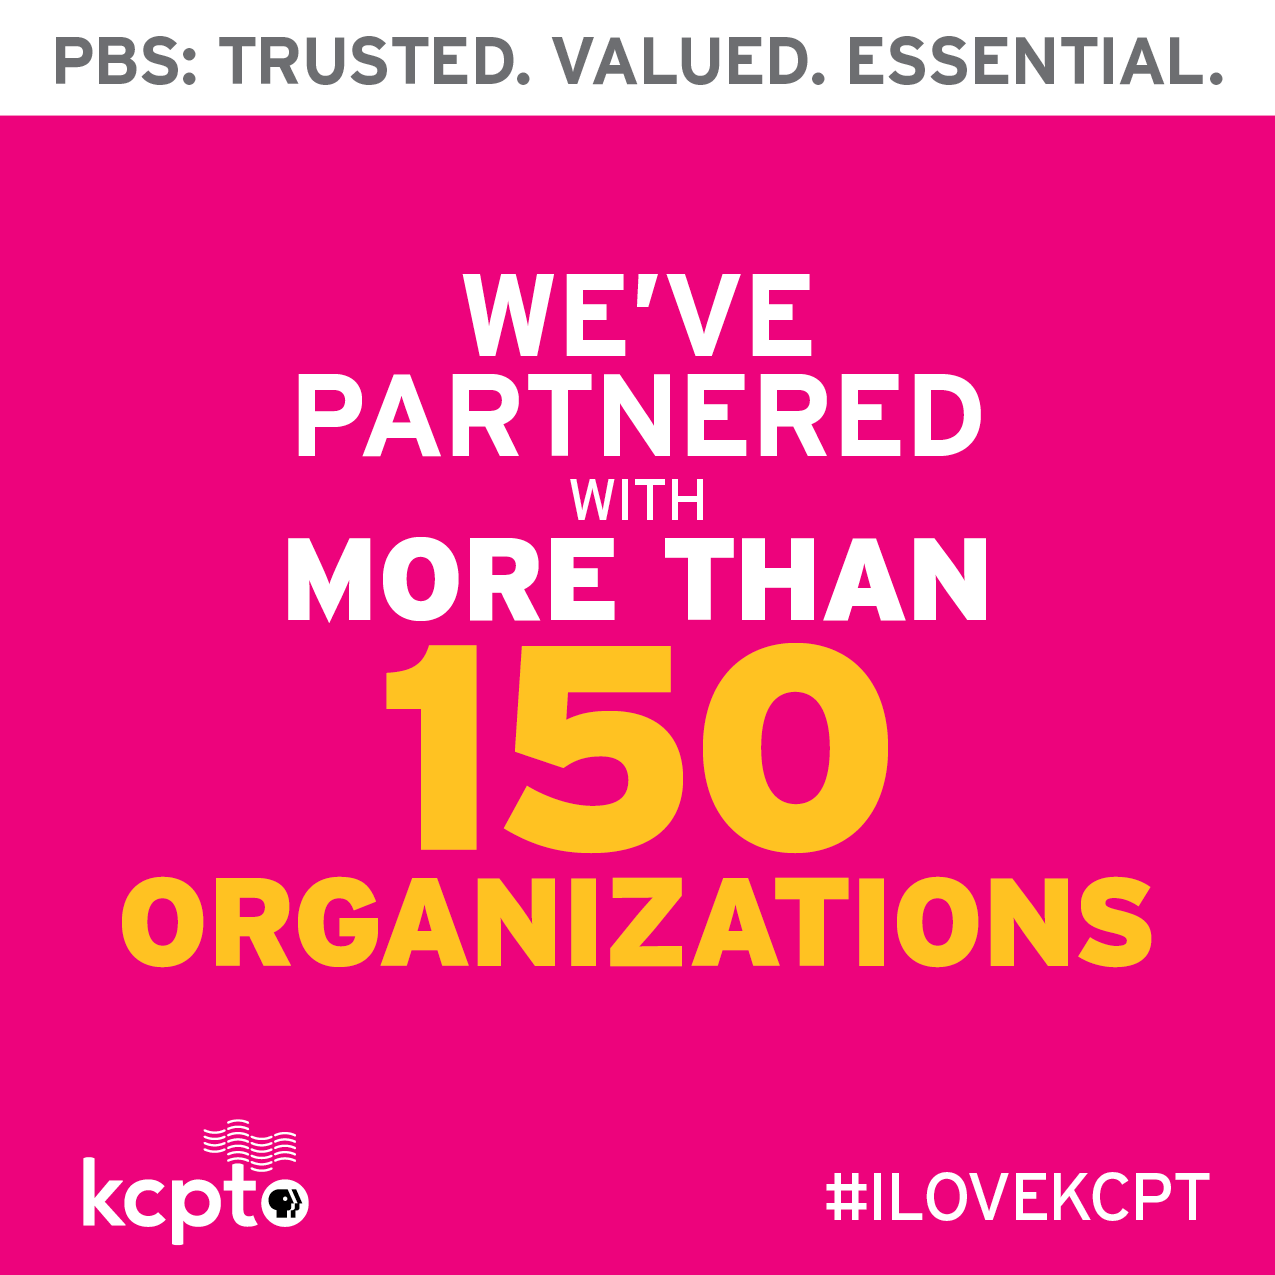 KCPT is partnered with more than 150 organizations.